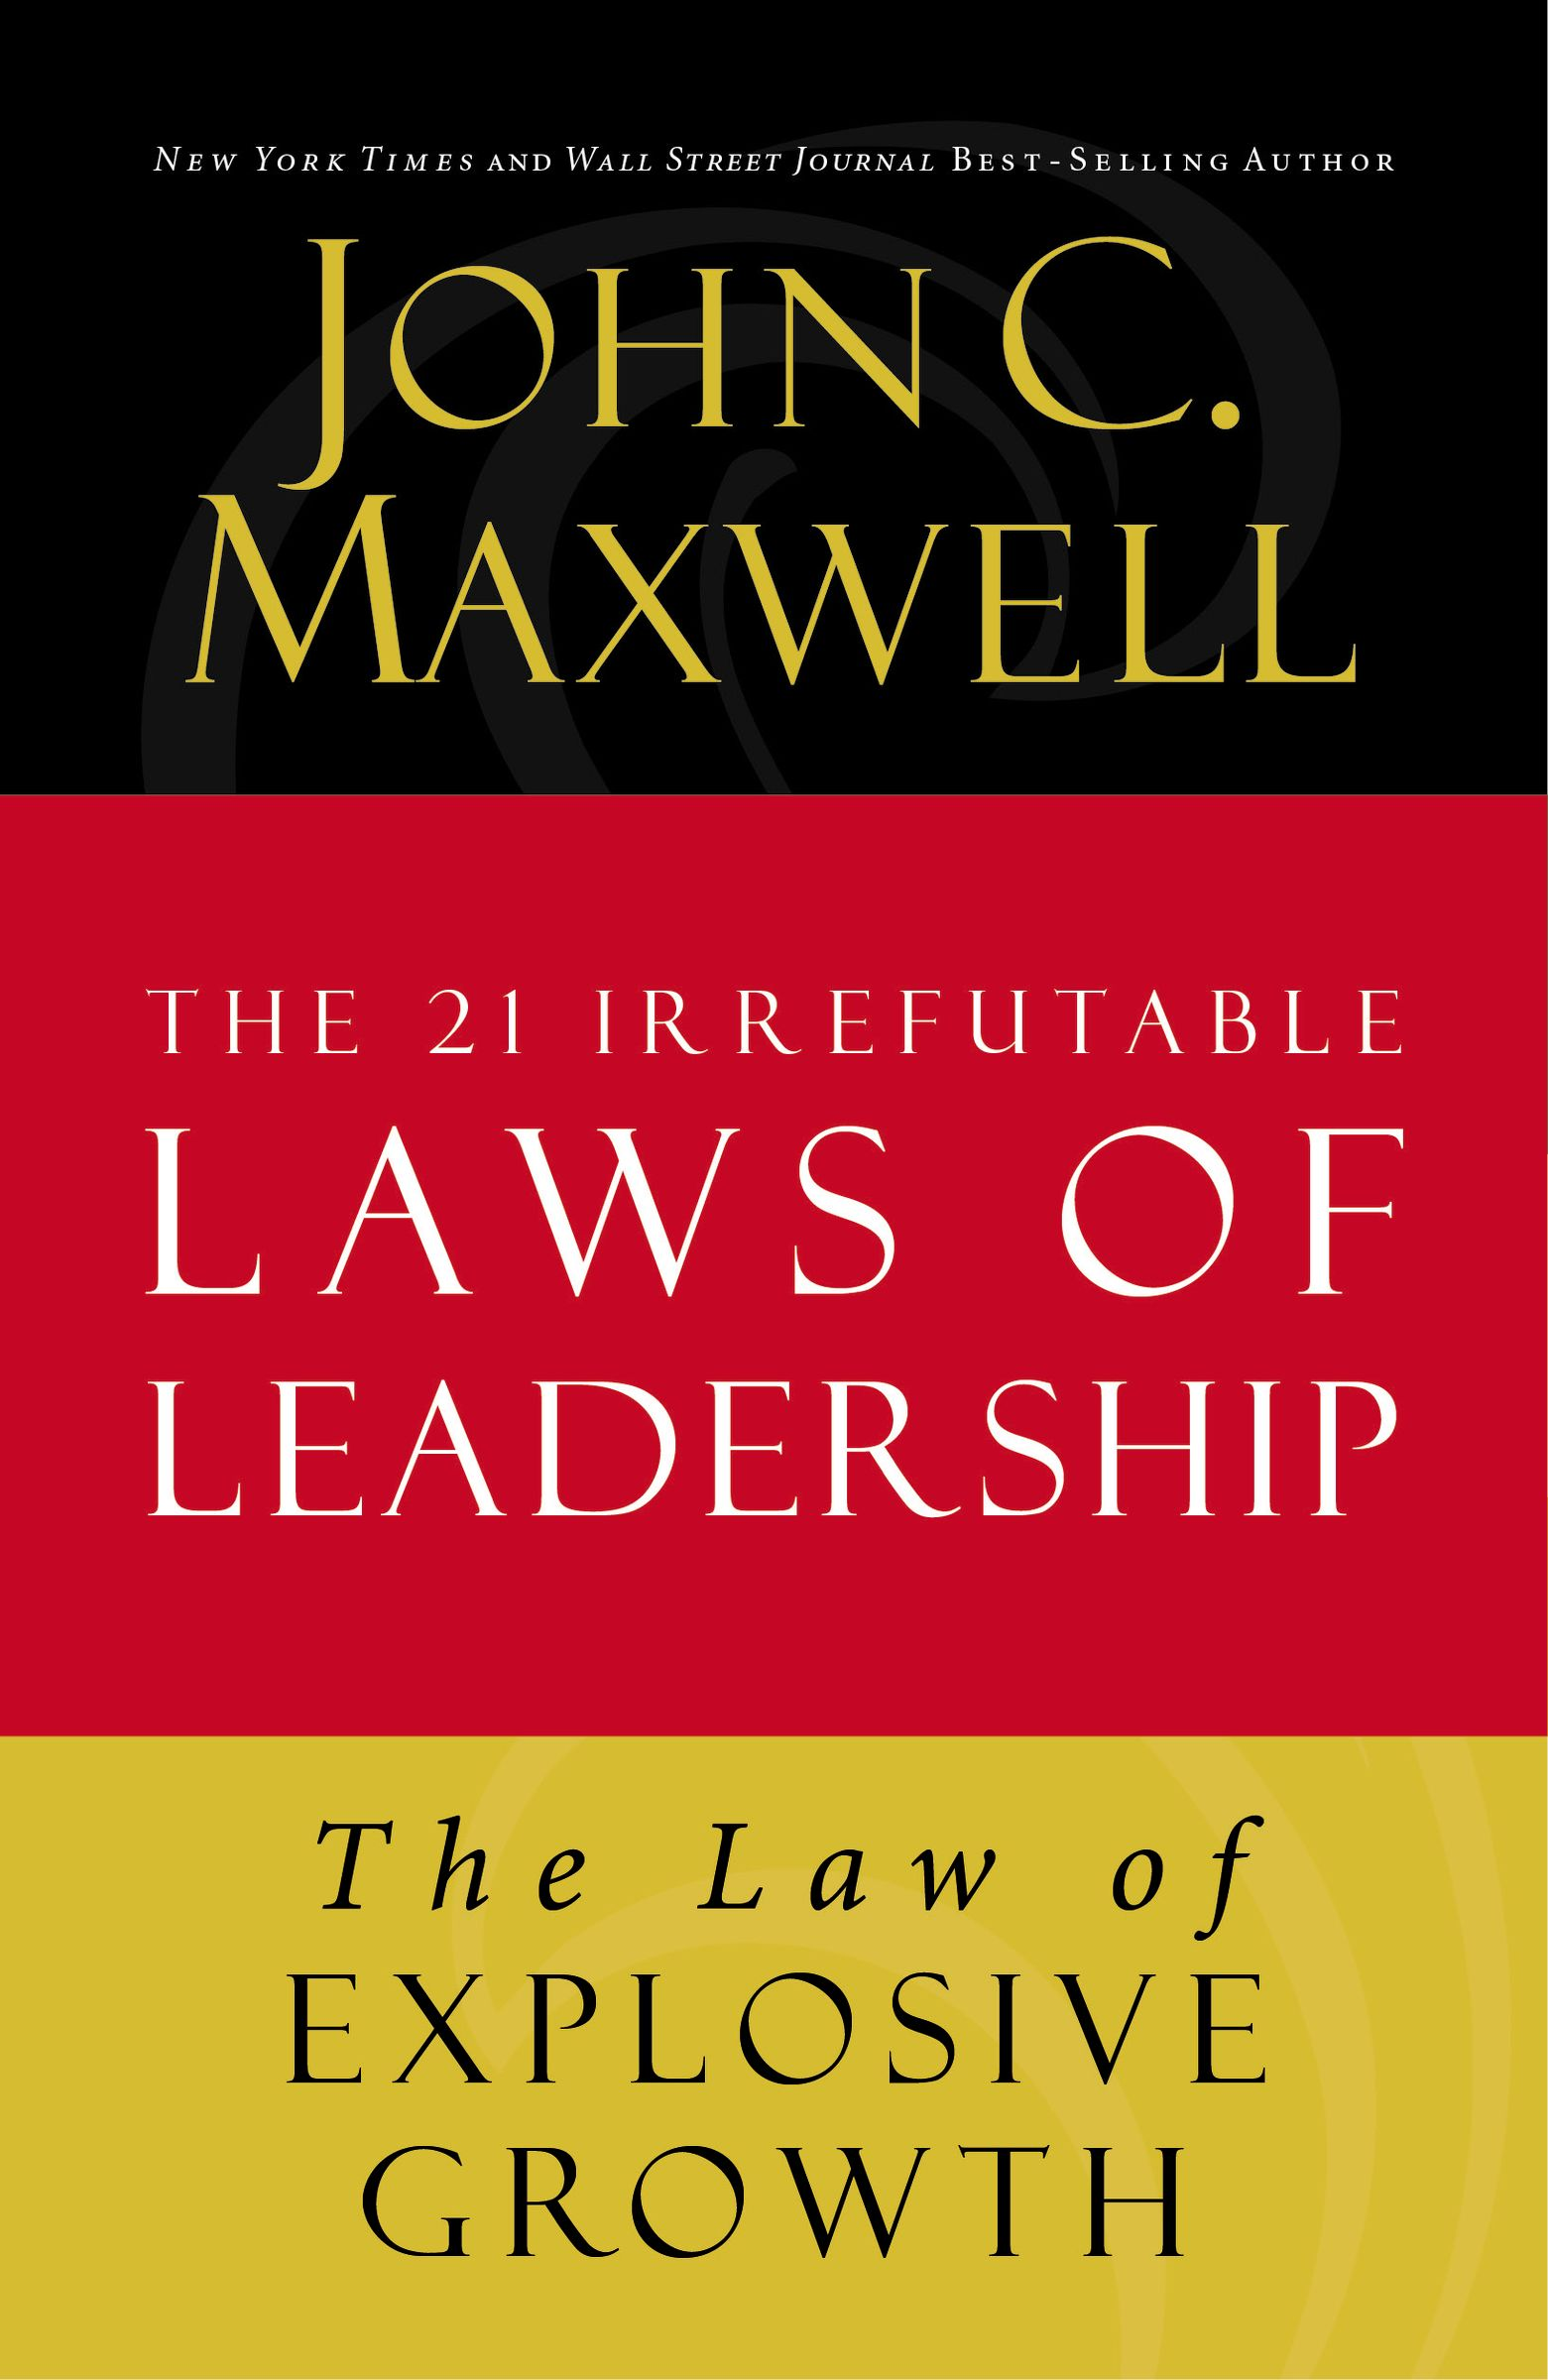 Download Ebook The Law of Explosive Growth by John C. Maxwell Pdf